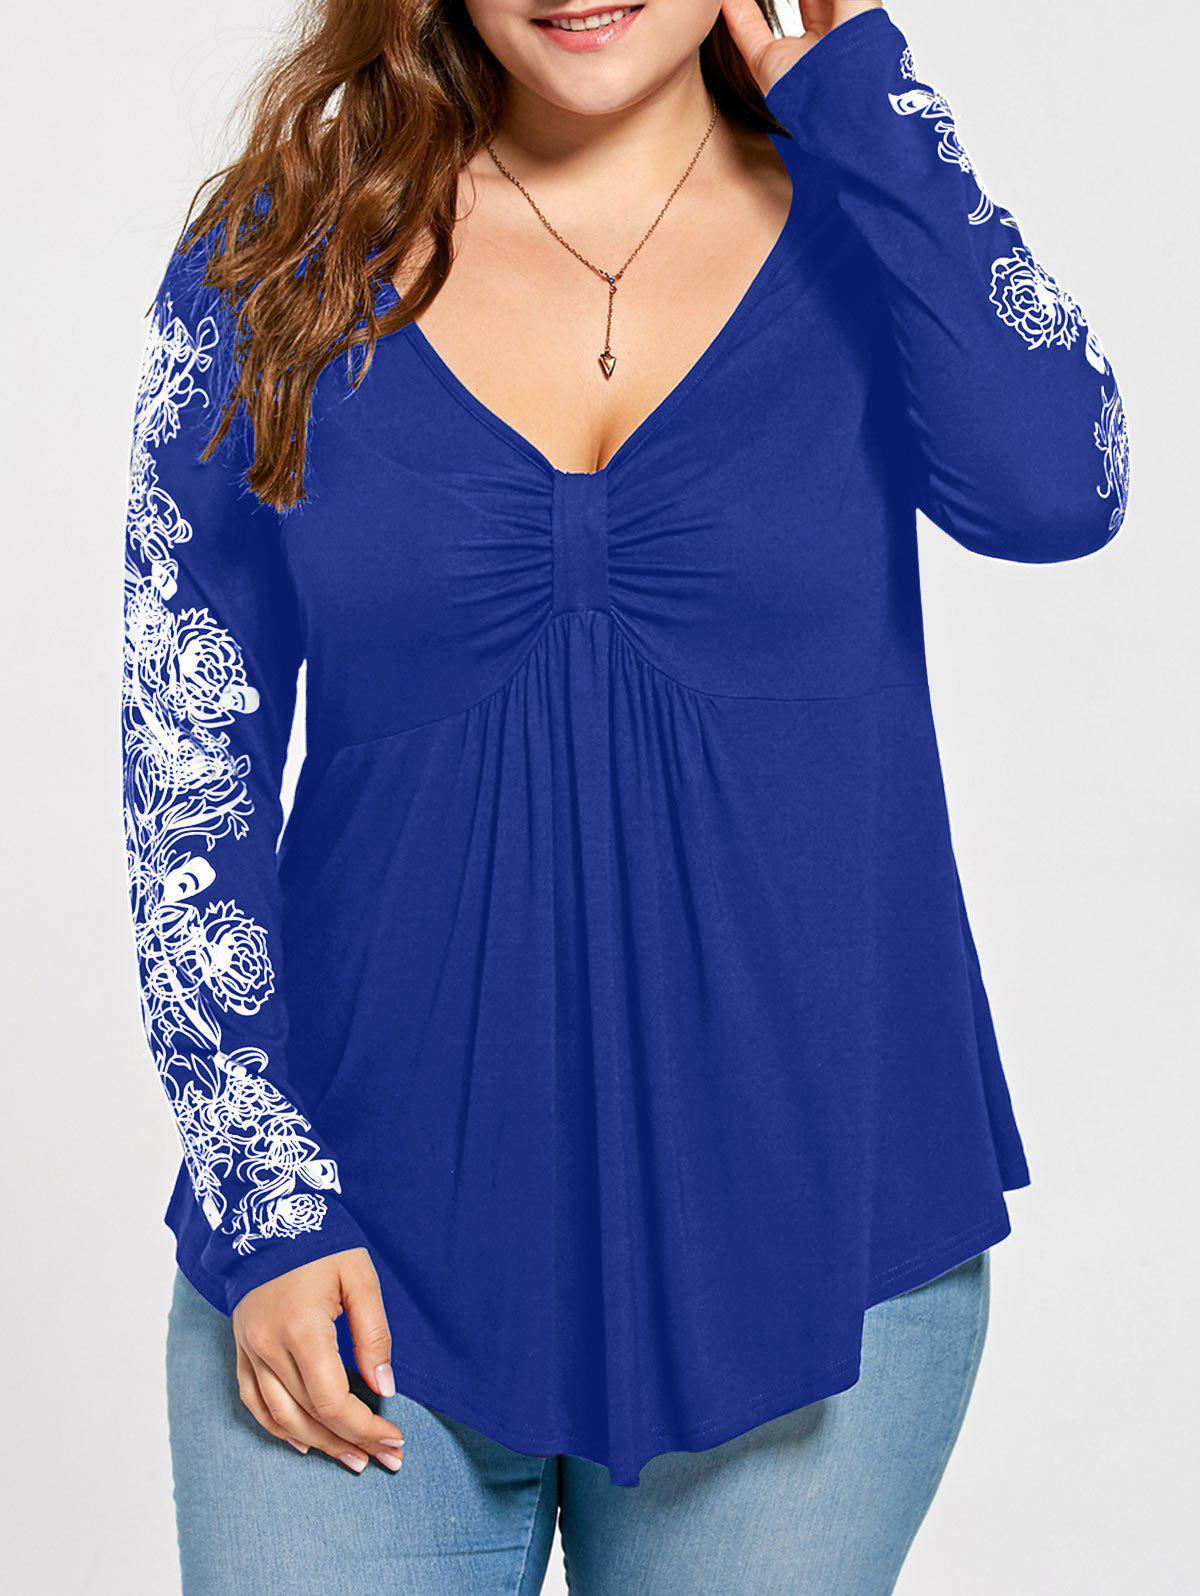 Floral Pattern Long Sleeve Plus Size Draped T-shirtWOMEN<br><br>Size: 4XL; Color: BLUE; Material: Cotton,Polyester; Shirt Length: Long; Sleeve Length: Full; Collar: V-Neck; Style: Casual; Season: Fall,Spring; Embellishment: Draped; Pattern Type: Floral; Weight: 0.3000kg; Package Contents: 1 x T-shirt;